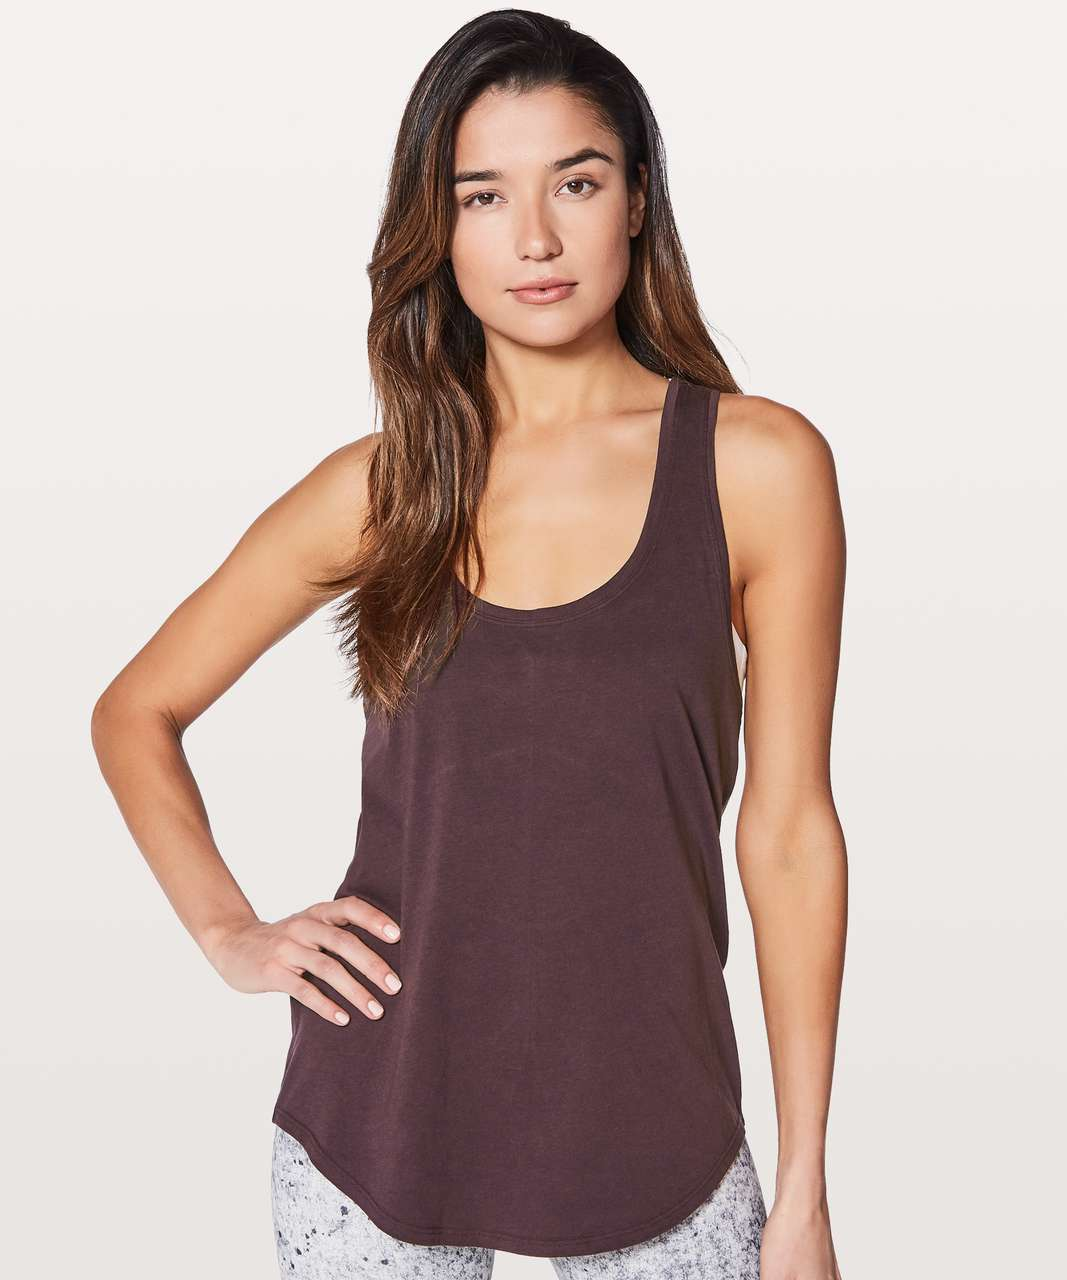 Lululemon Love Tank II - Black Cherry